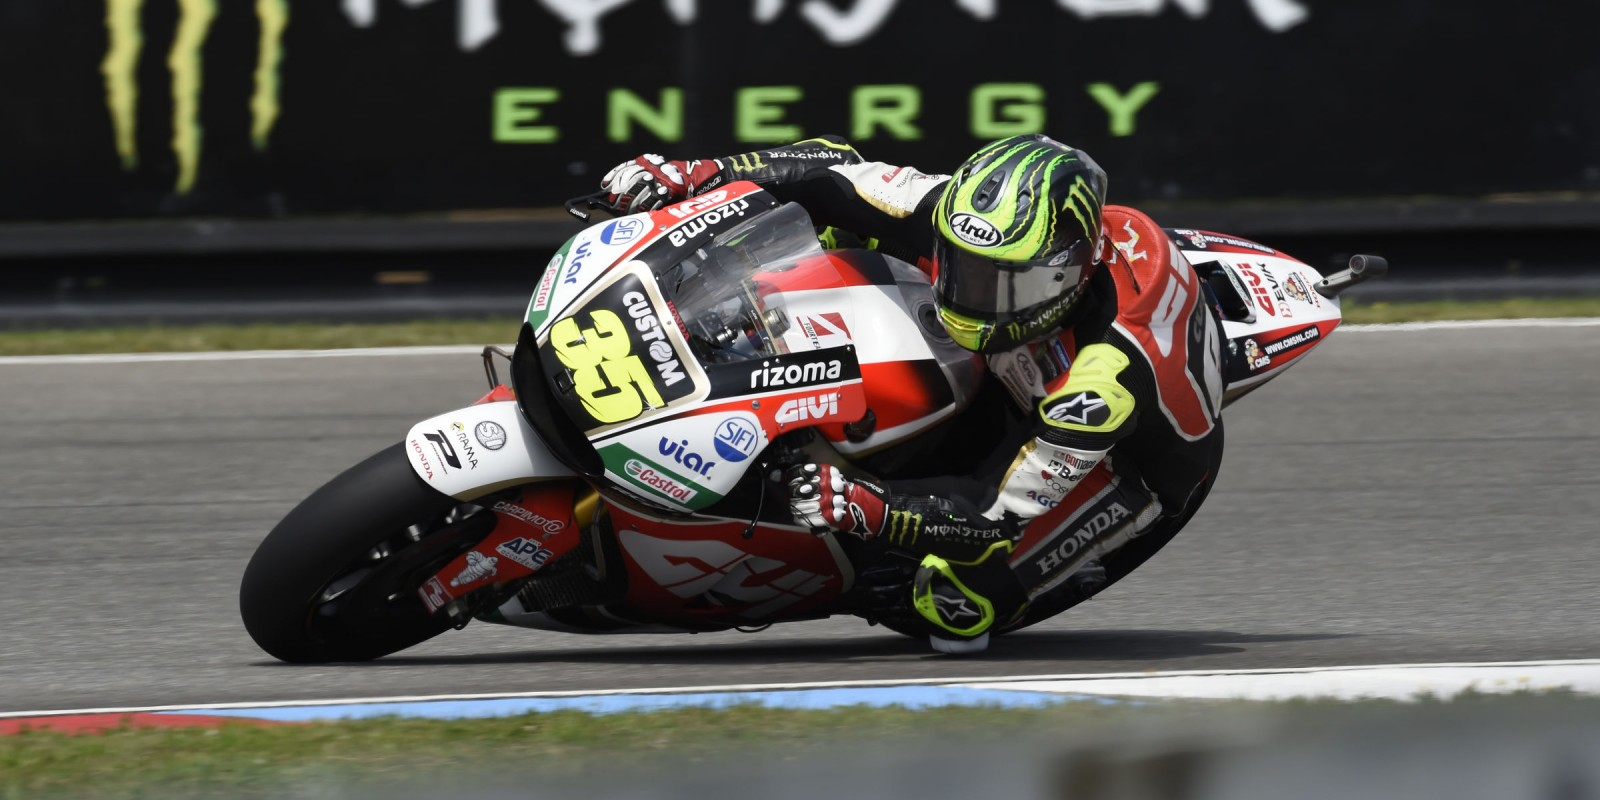 Behind the scenes at the 2017 Grand Prix of Czech Republic Cal Crutchlow at the 2017 Grand Prix of Czech Republic